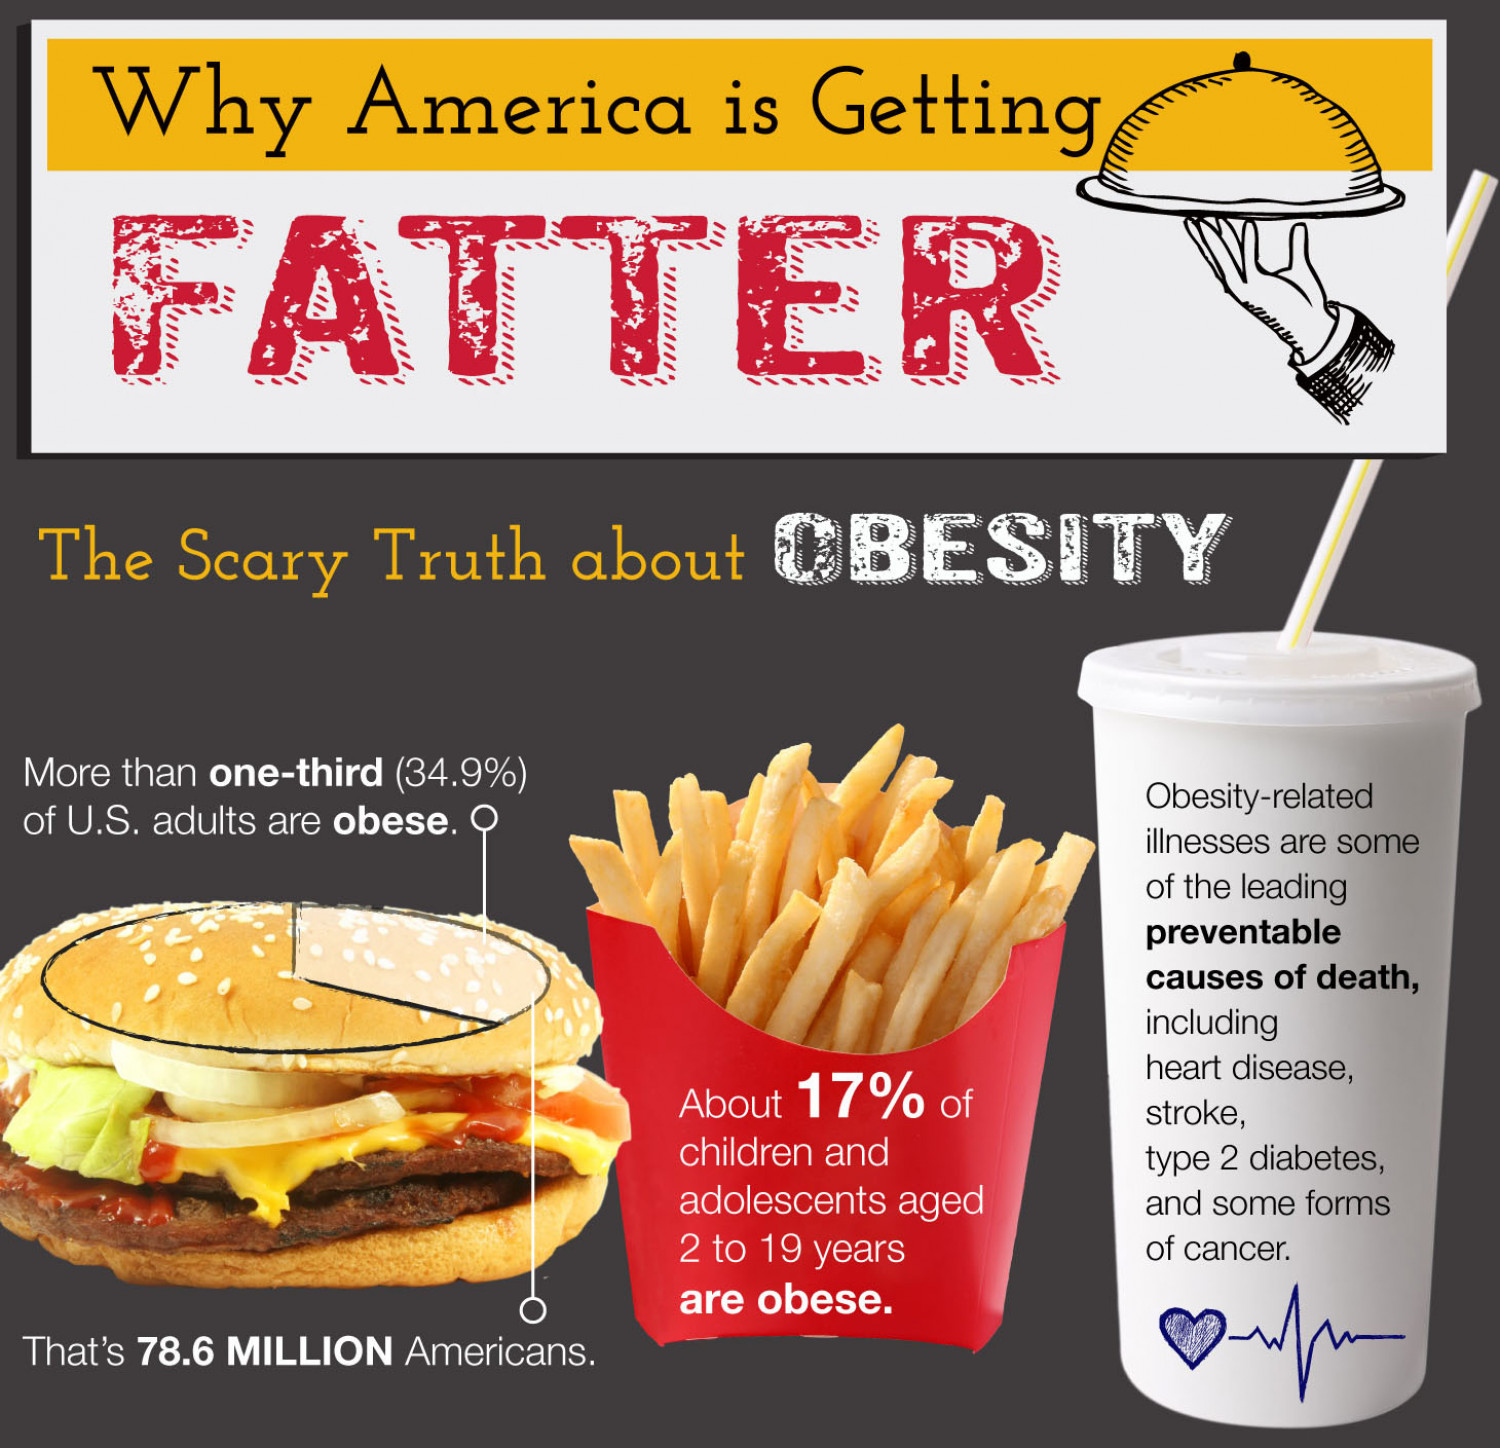 an essay on obesity in americans Approximately 478 percent of african americans are obese (including 371 percent of men and 566 percent of women) 21 obesity and african americans.